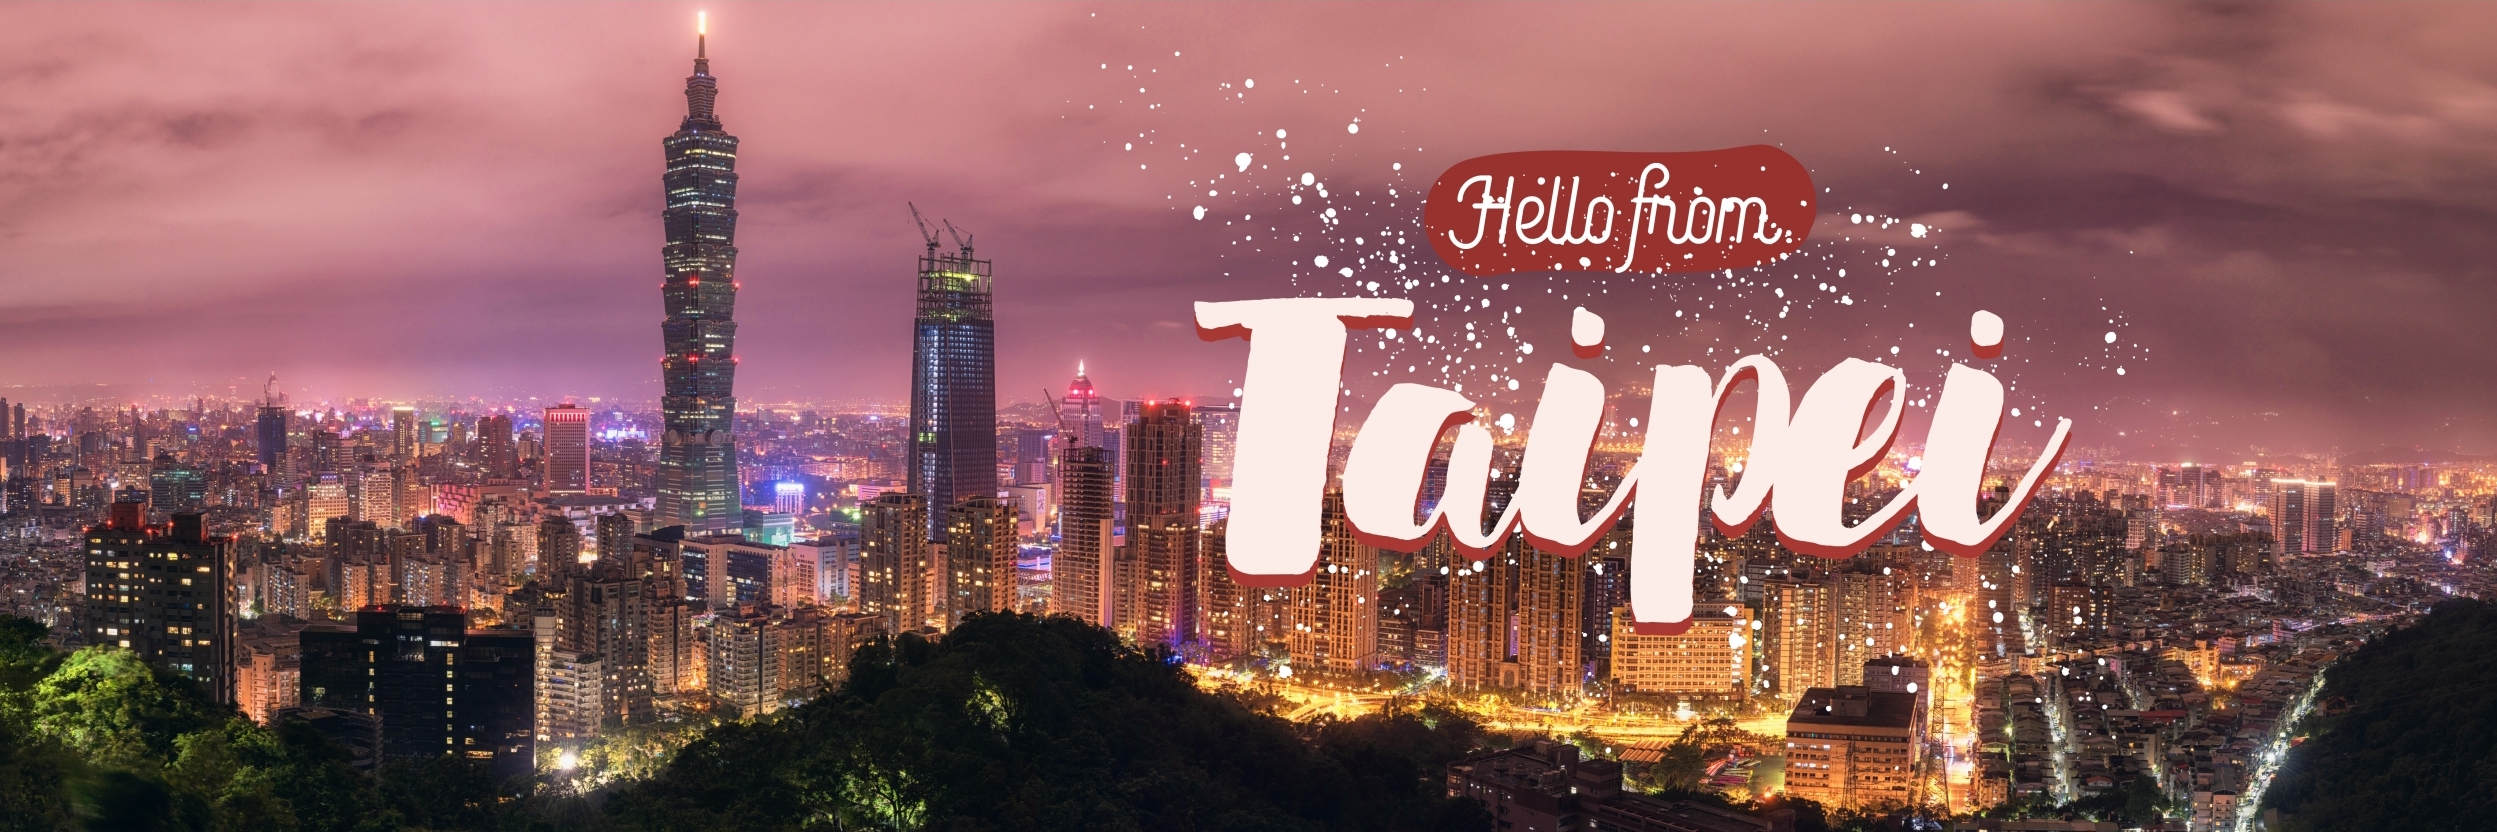 https://gody.vn/blog/nmha13034150/post/hello-from-taipei-taiwan-2819